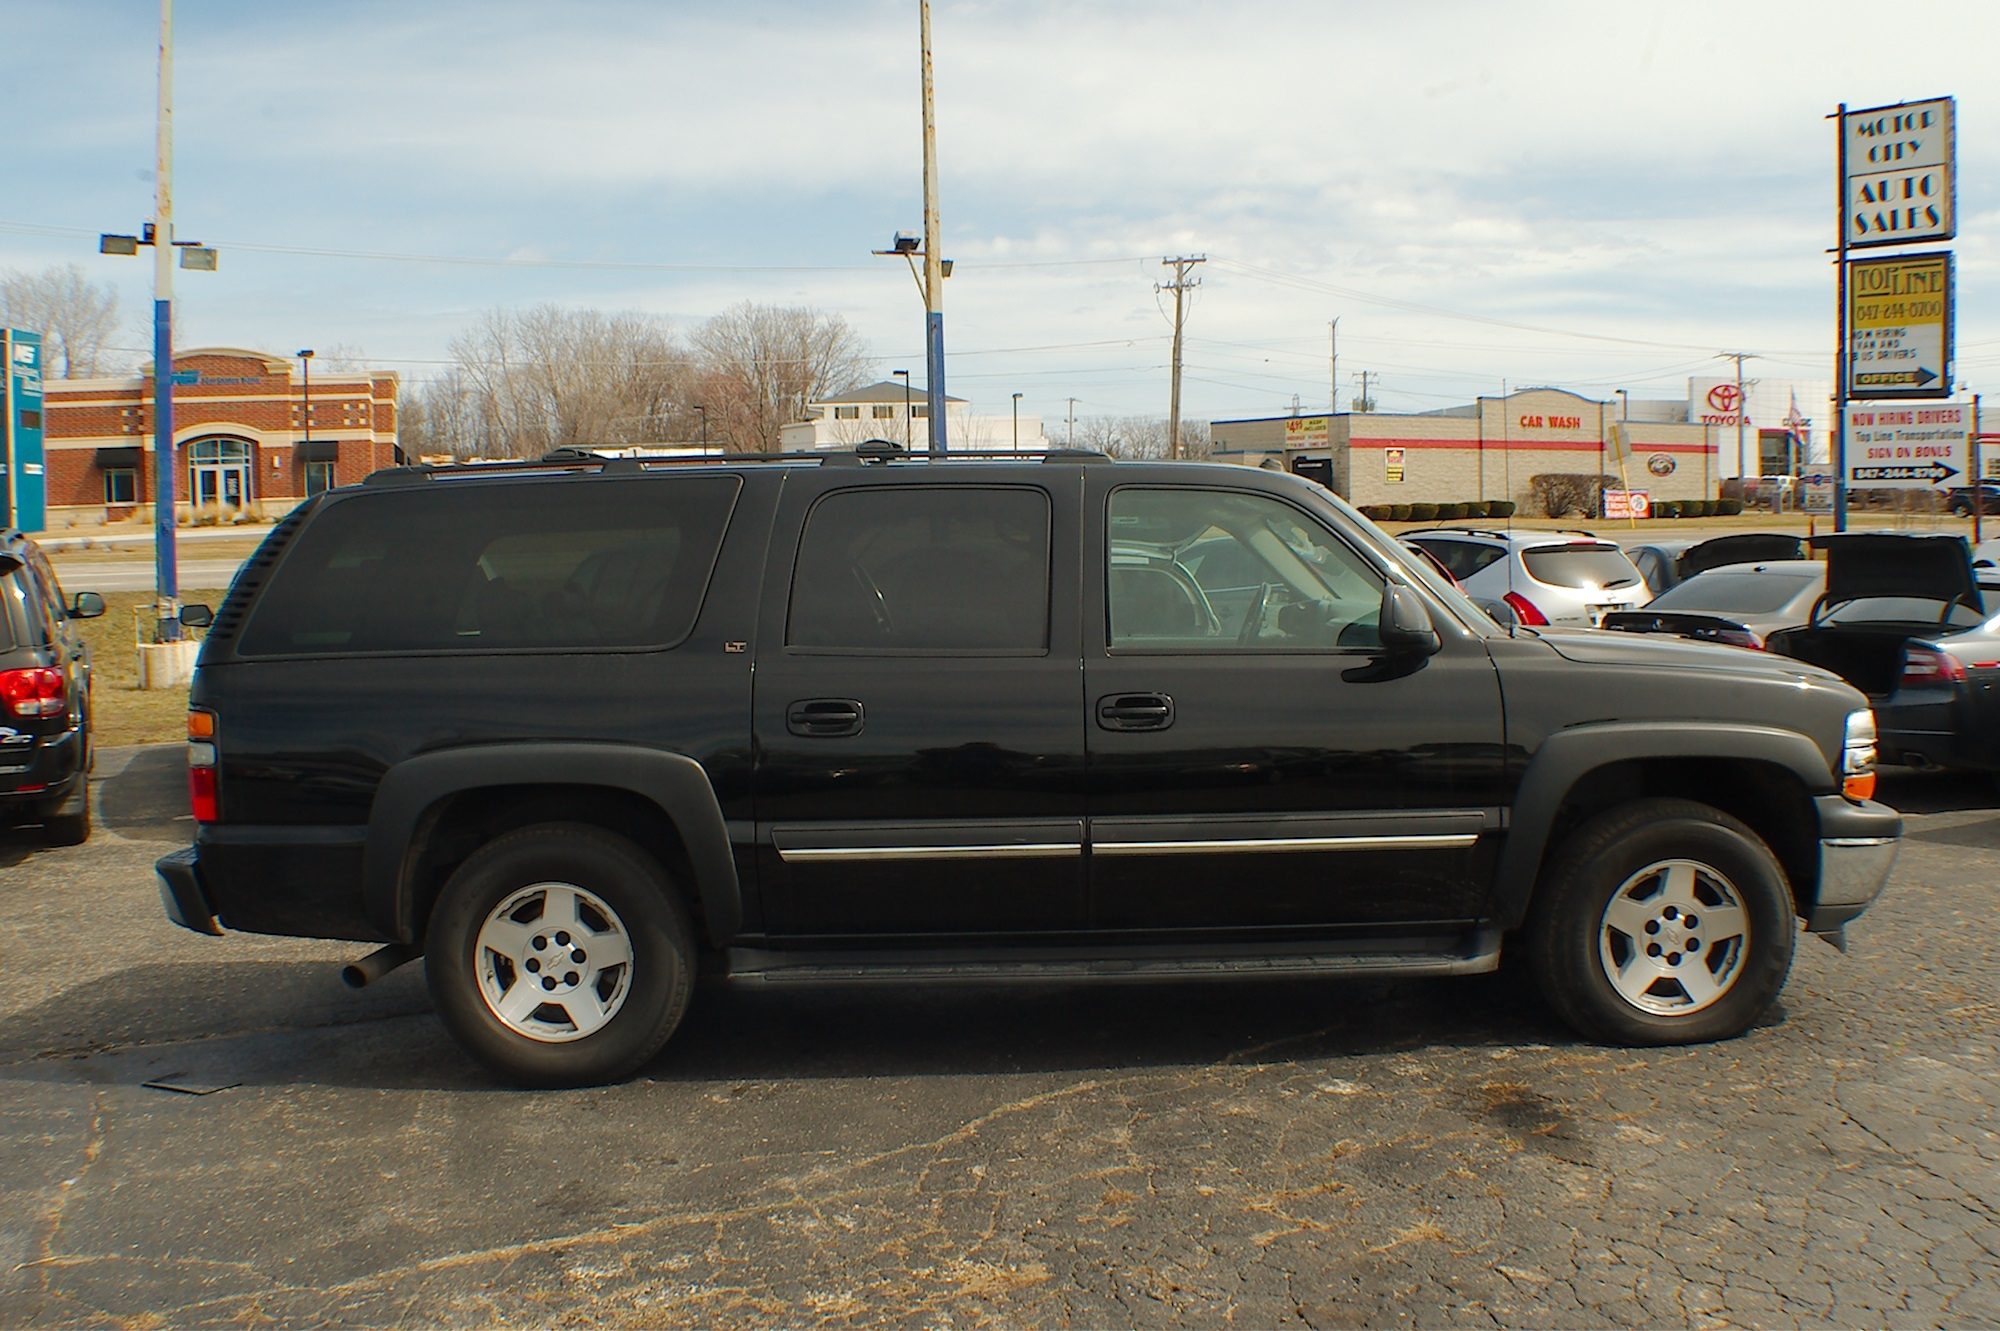 2005 Chevrolet Suburban LT Black 4x4 SUV Sale Bannockburn Barrington Beach Park